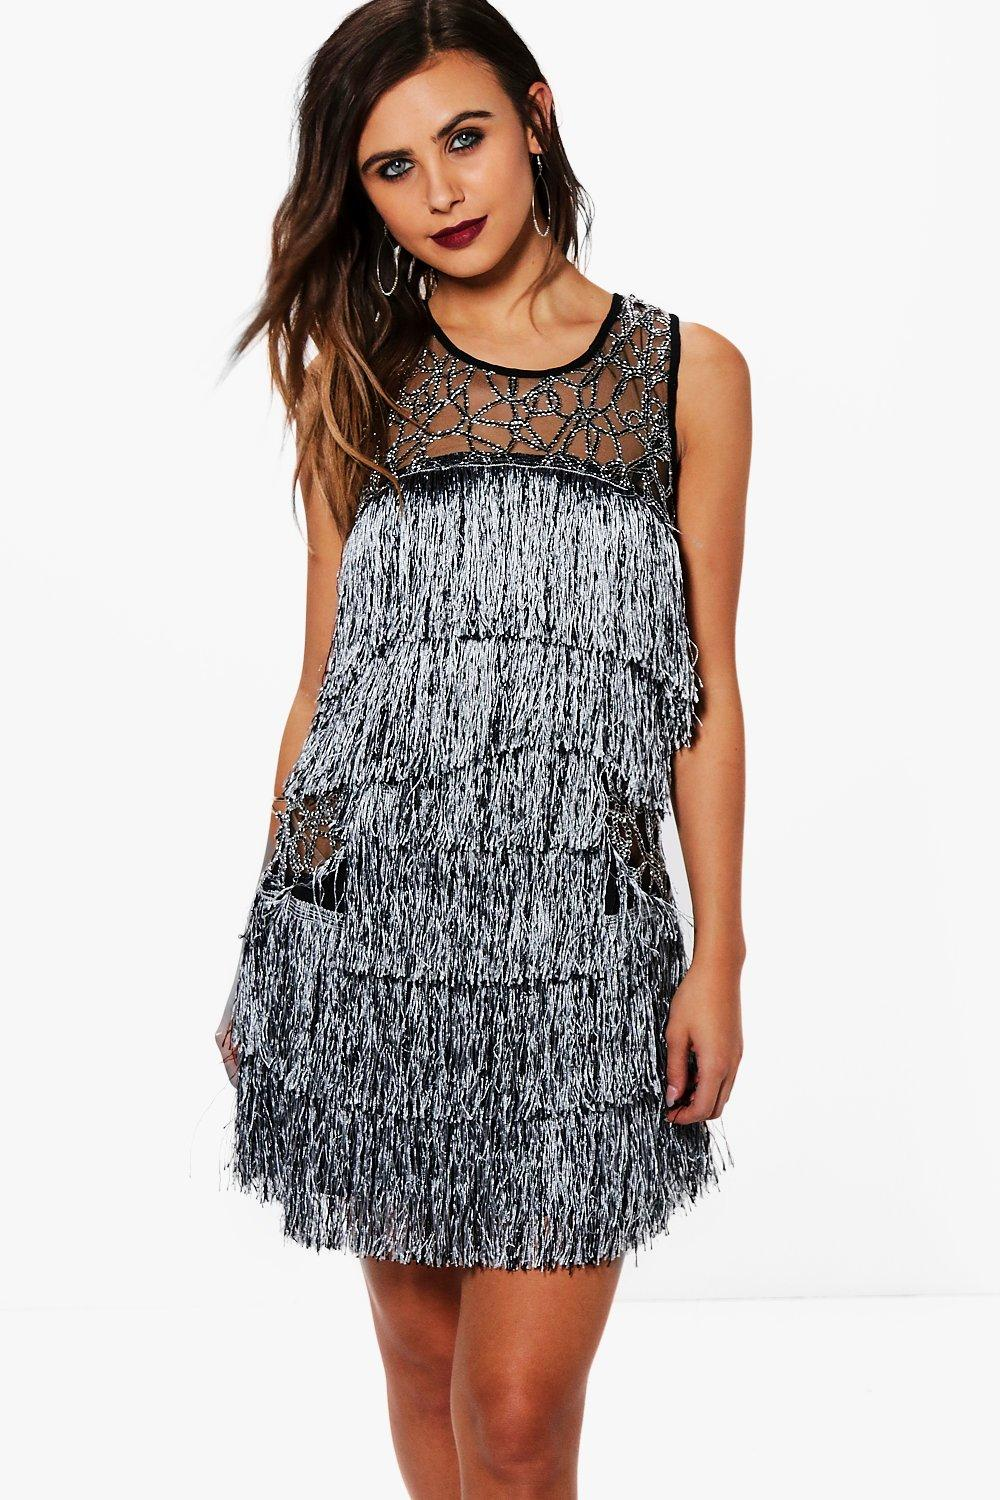 Petite Layla Premium All Over Tassel Dress